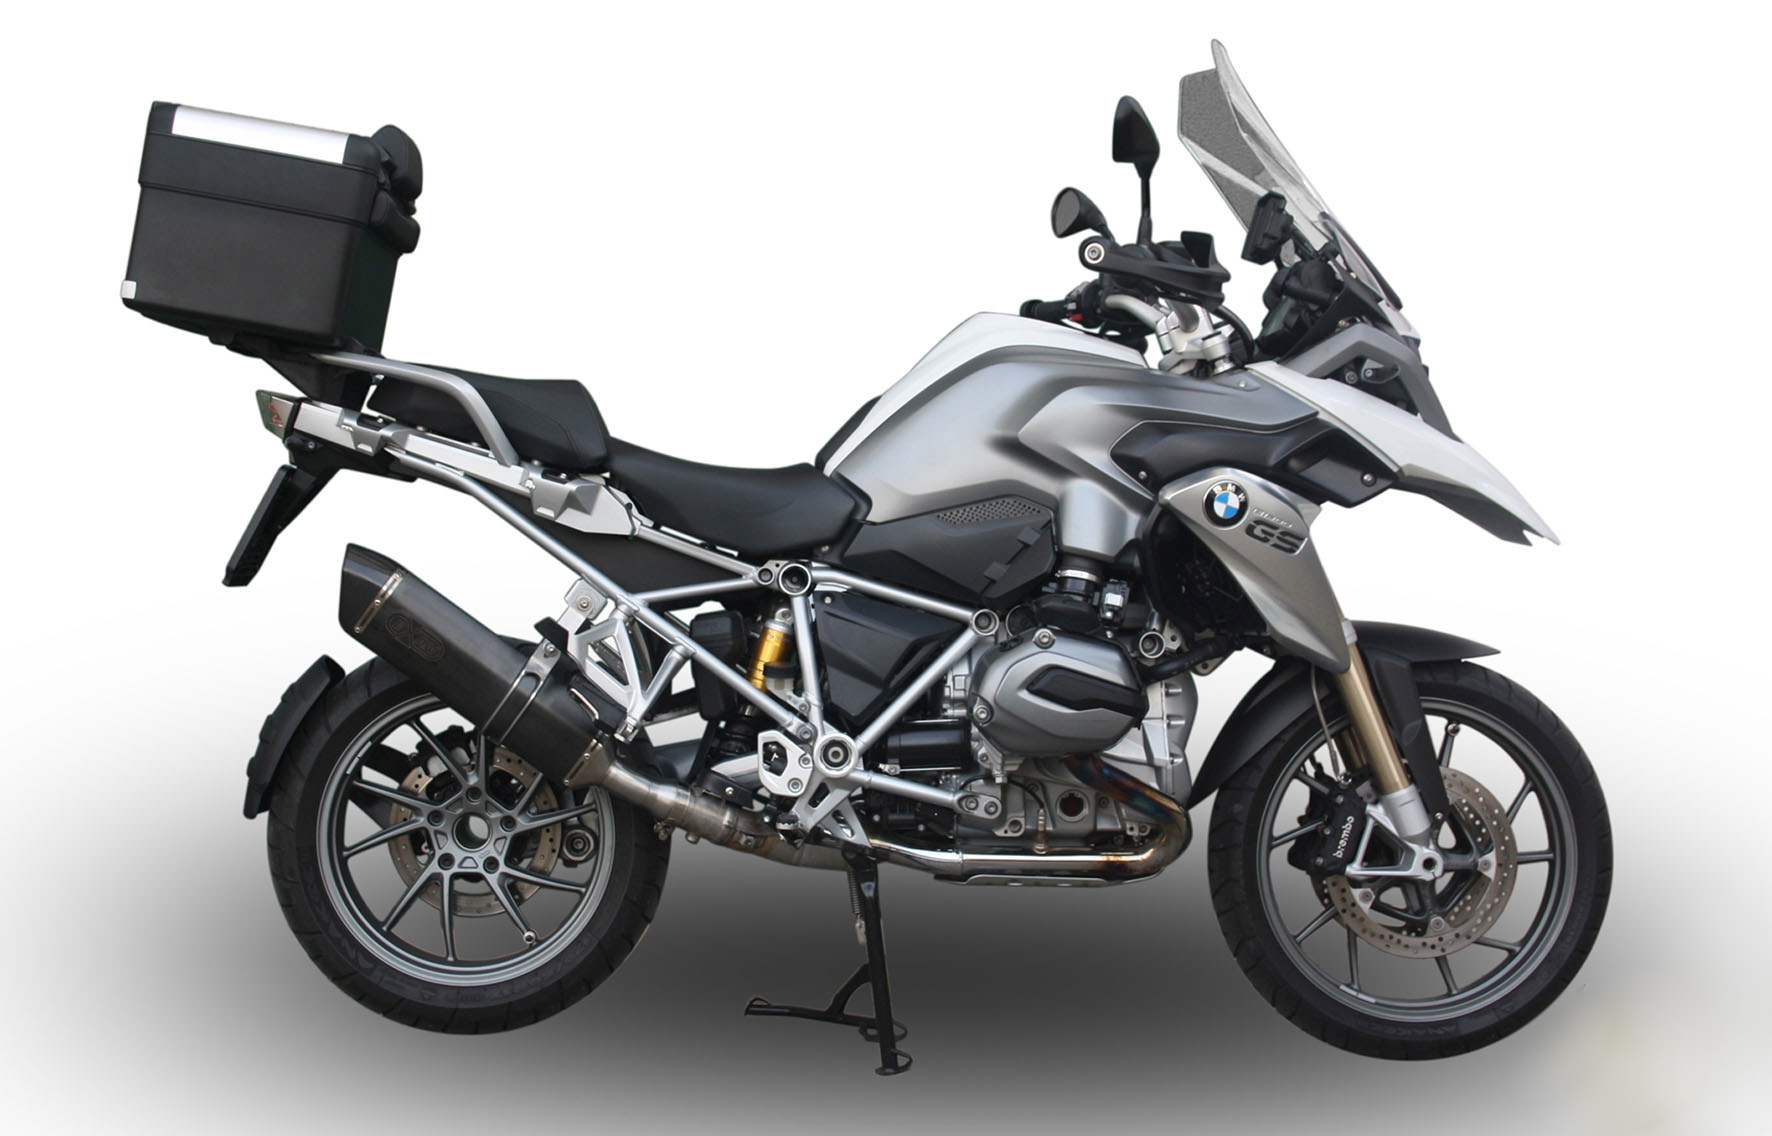 scarico exan per bmw r 1200 gs e r 1200 gs adventure motociclismo. Black Bedroom Furniture Sets. Home Design Ideas